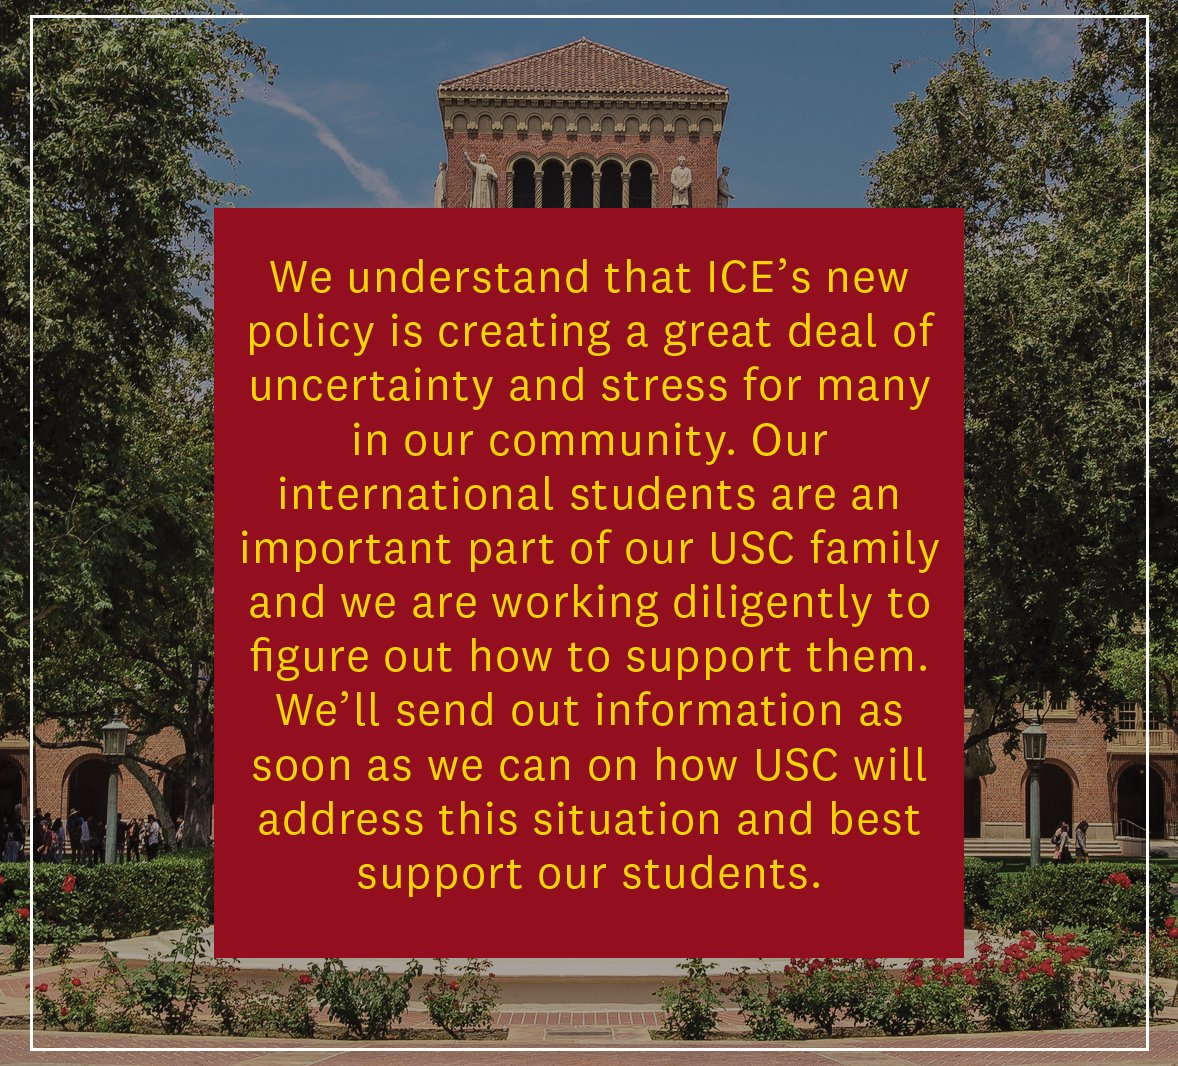 We understand that ICE's new policy is creating a great deal of uncertainty & stress for our community. Our international students are an important part of our USC family & we're working diligently on how to support them. We'll send out info as soon as we can on how USC will address this situation.